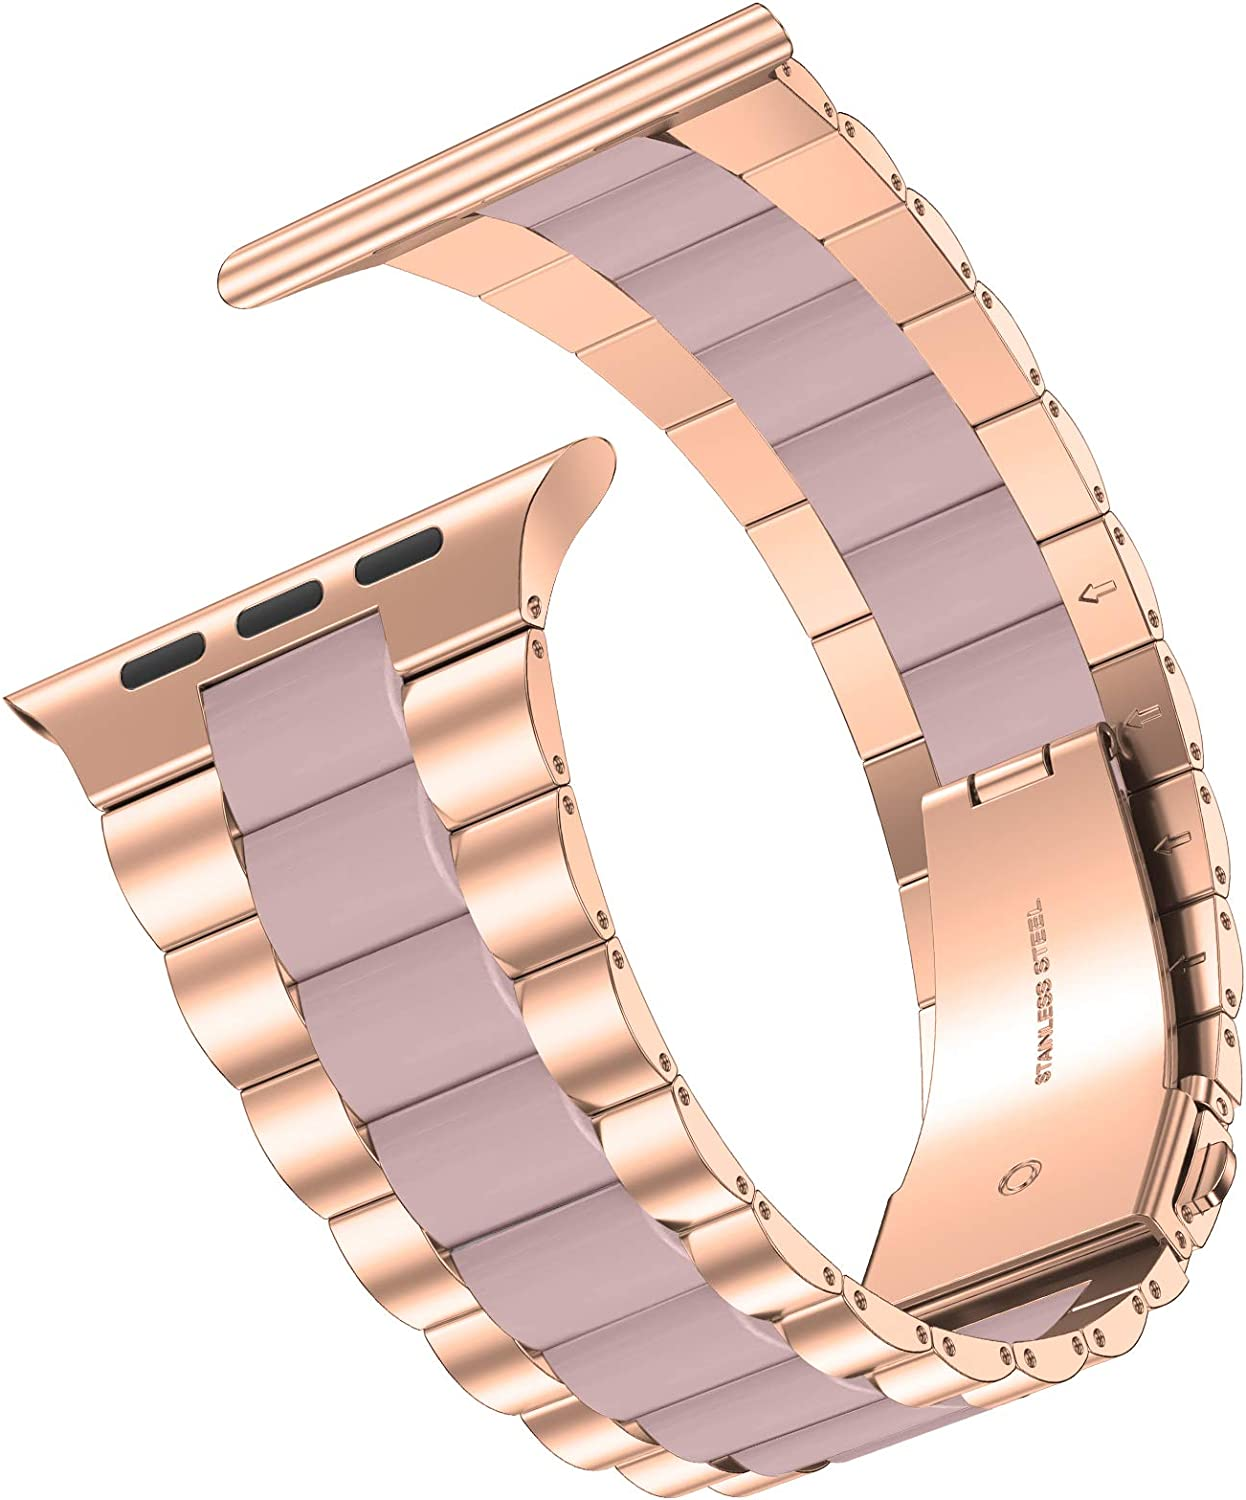 iiteeology Compatible with Apple Watch Band 40mm 38mm, Resin Stainless Steel Metal Link Wristbands for iWatch SE Series 6 5 4 3 2 1 - Rose Gold+Pink